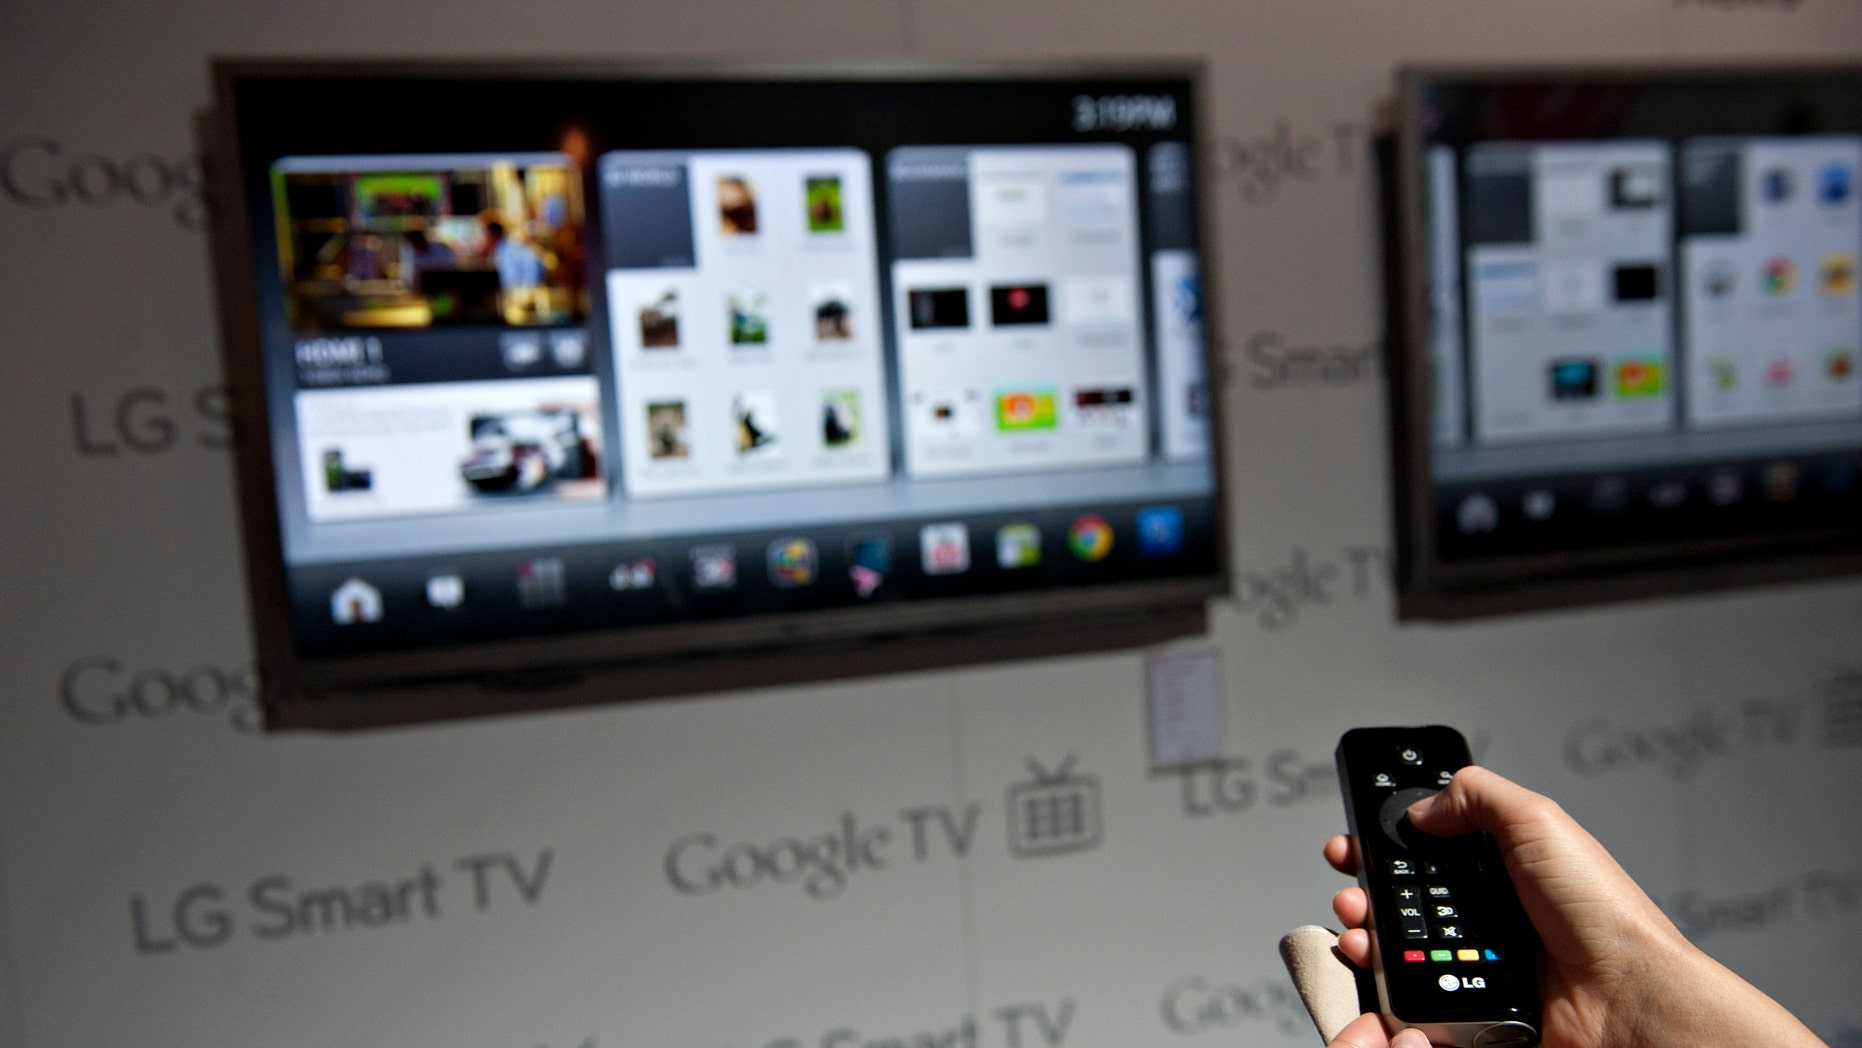 digital products A product demonstrator uses a remote control to navigate a menu on a LG Smart TV with Google TV at the 2012 International Consumer Electronics Show (CES) in Las Vegas, Nevada, U.S., on Wednesday, Jan. 11, 2012 - file photo.